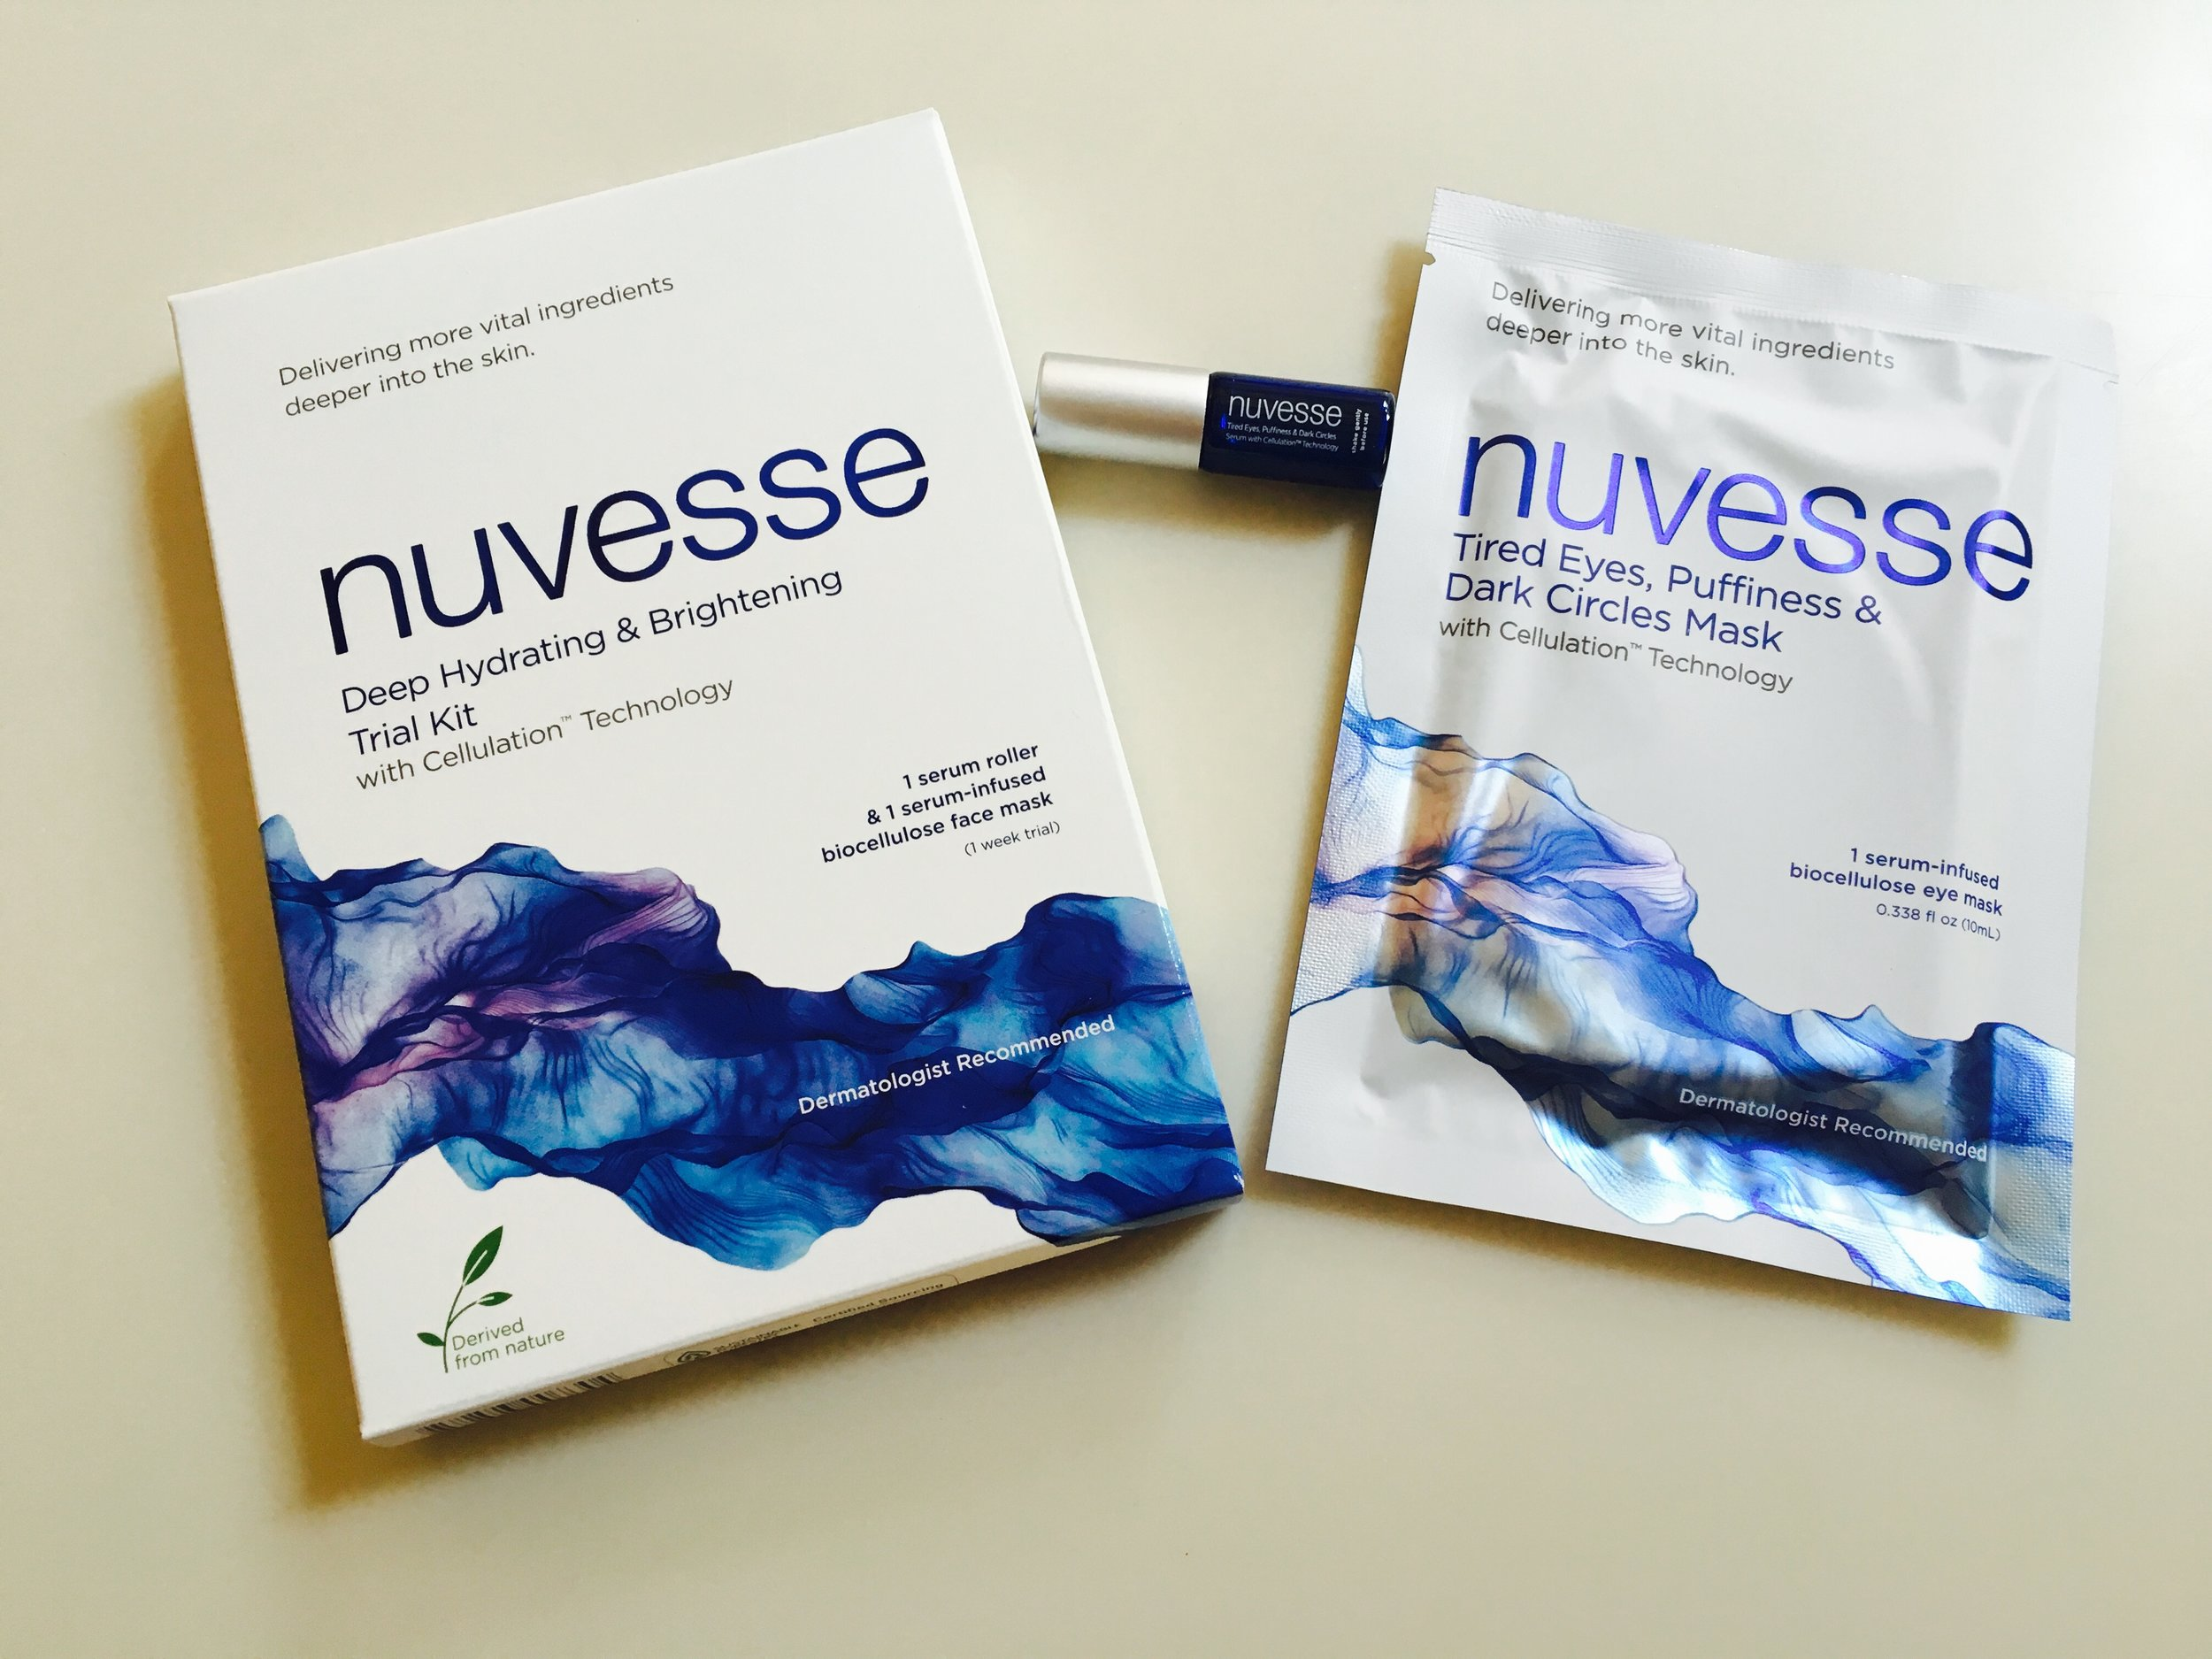 When the fall season is just around the corner and my schedule doesn't allow for as much sleep, a little bit of   Nuvesse   does the trick! Love the way this mask literally wakes up my skin.